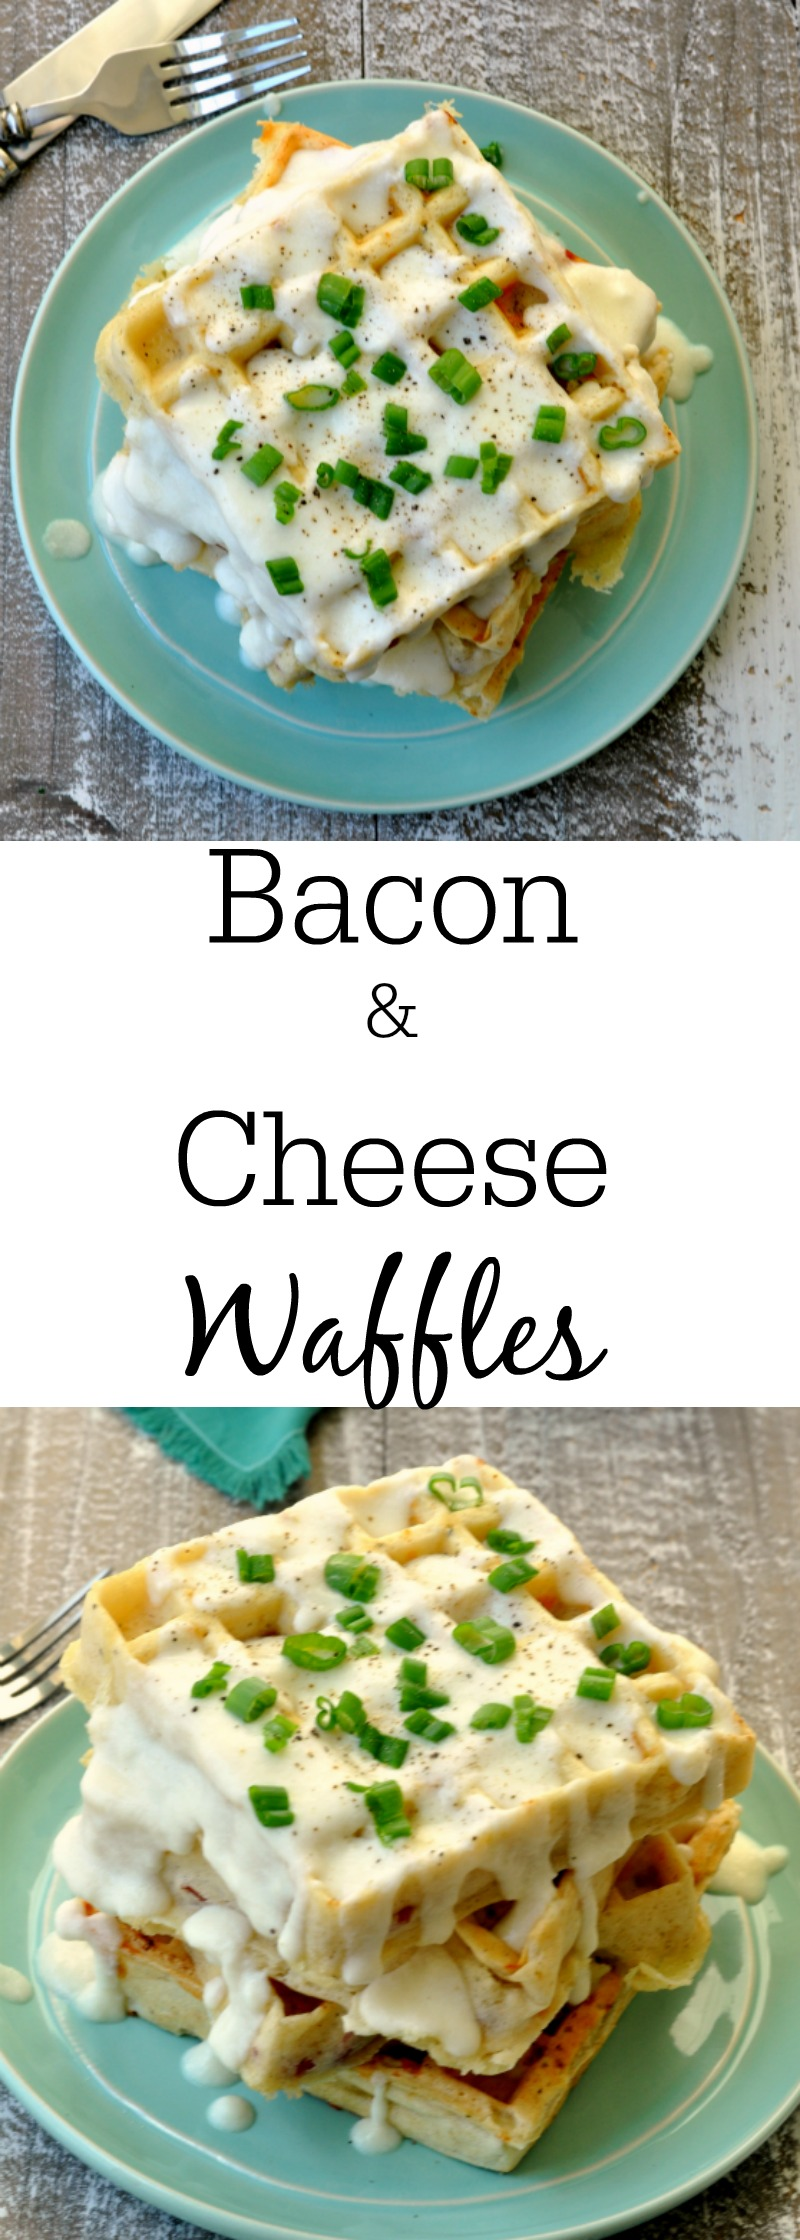 Bacon and Cheese Waffles with Swiss Cheese Sauce